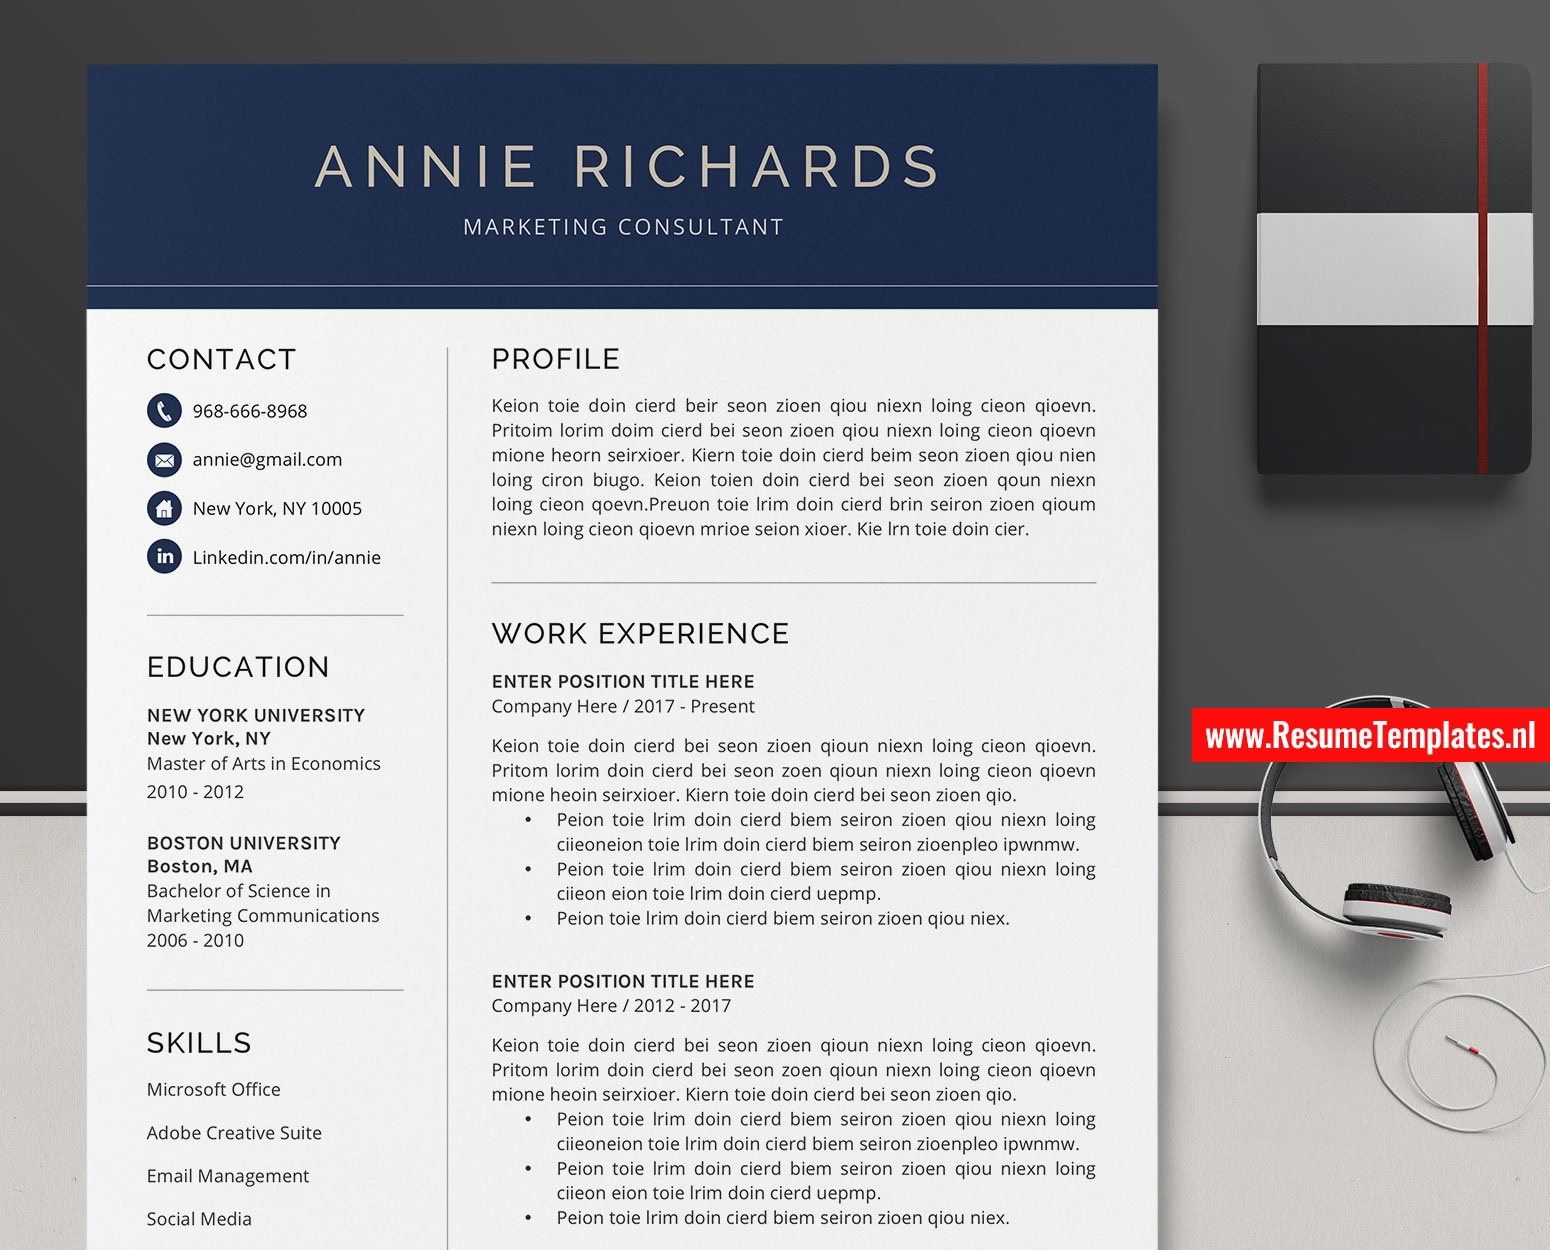 009 Top Microsoft Word Resume Template Download Sample  Modern M Free Office 2007Full